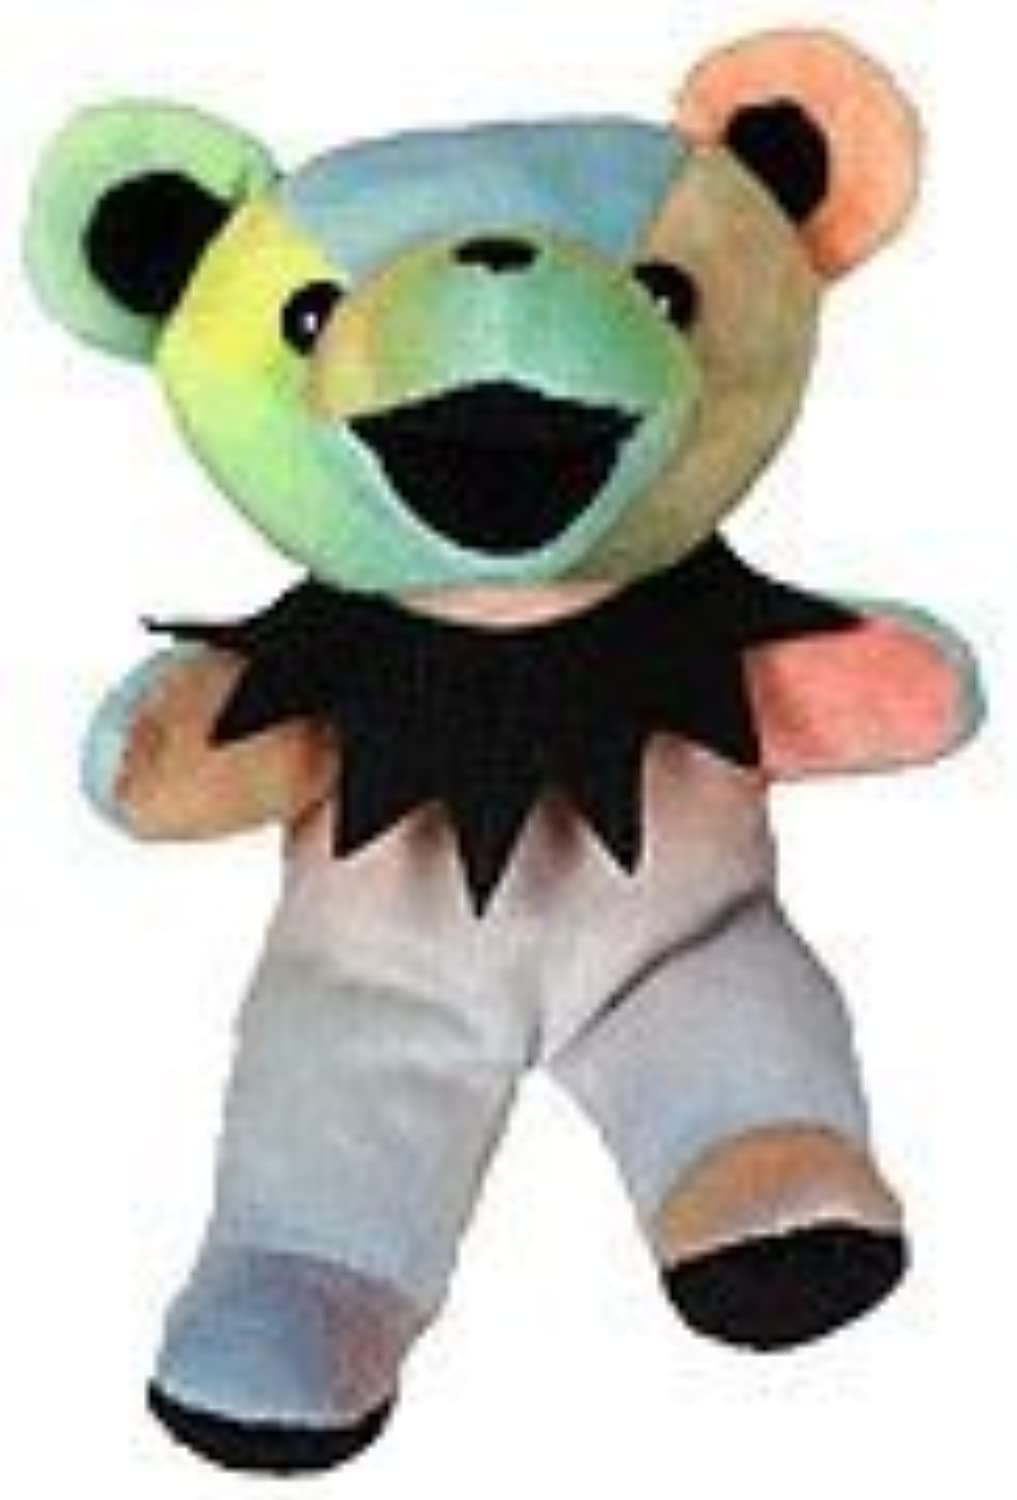 Grateful Dead  Cosmic Charlie  Edition 1 Bean Bear [Toy] by Grateful Dead